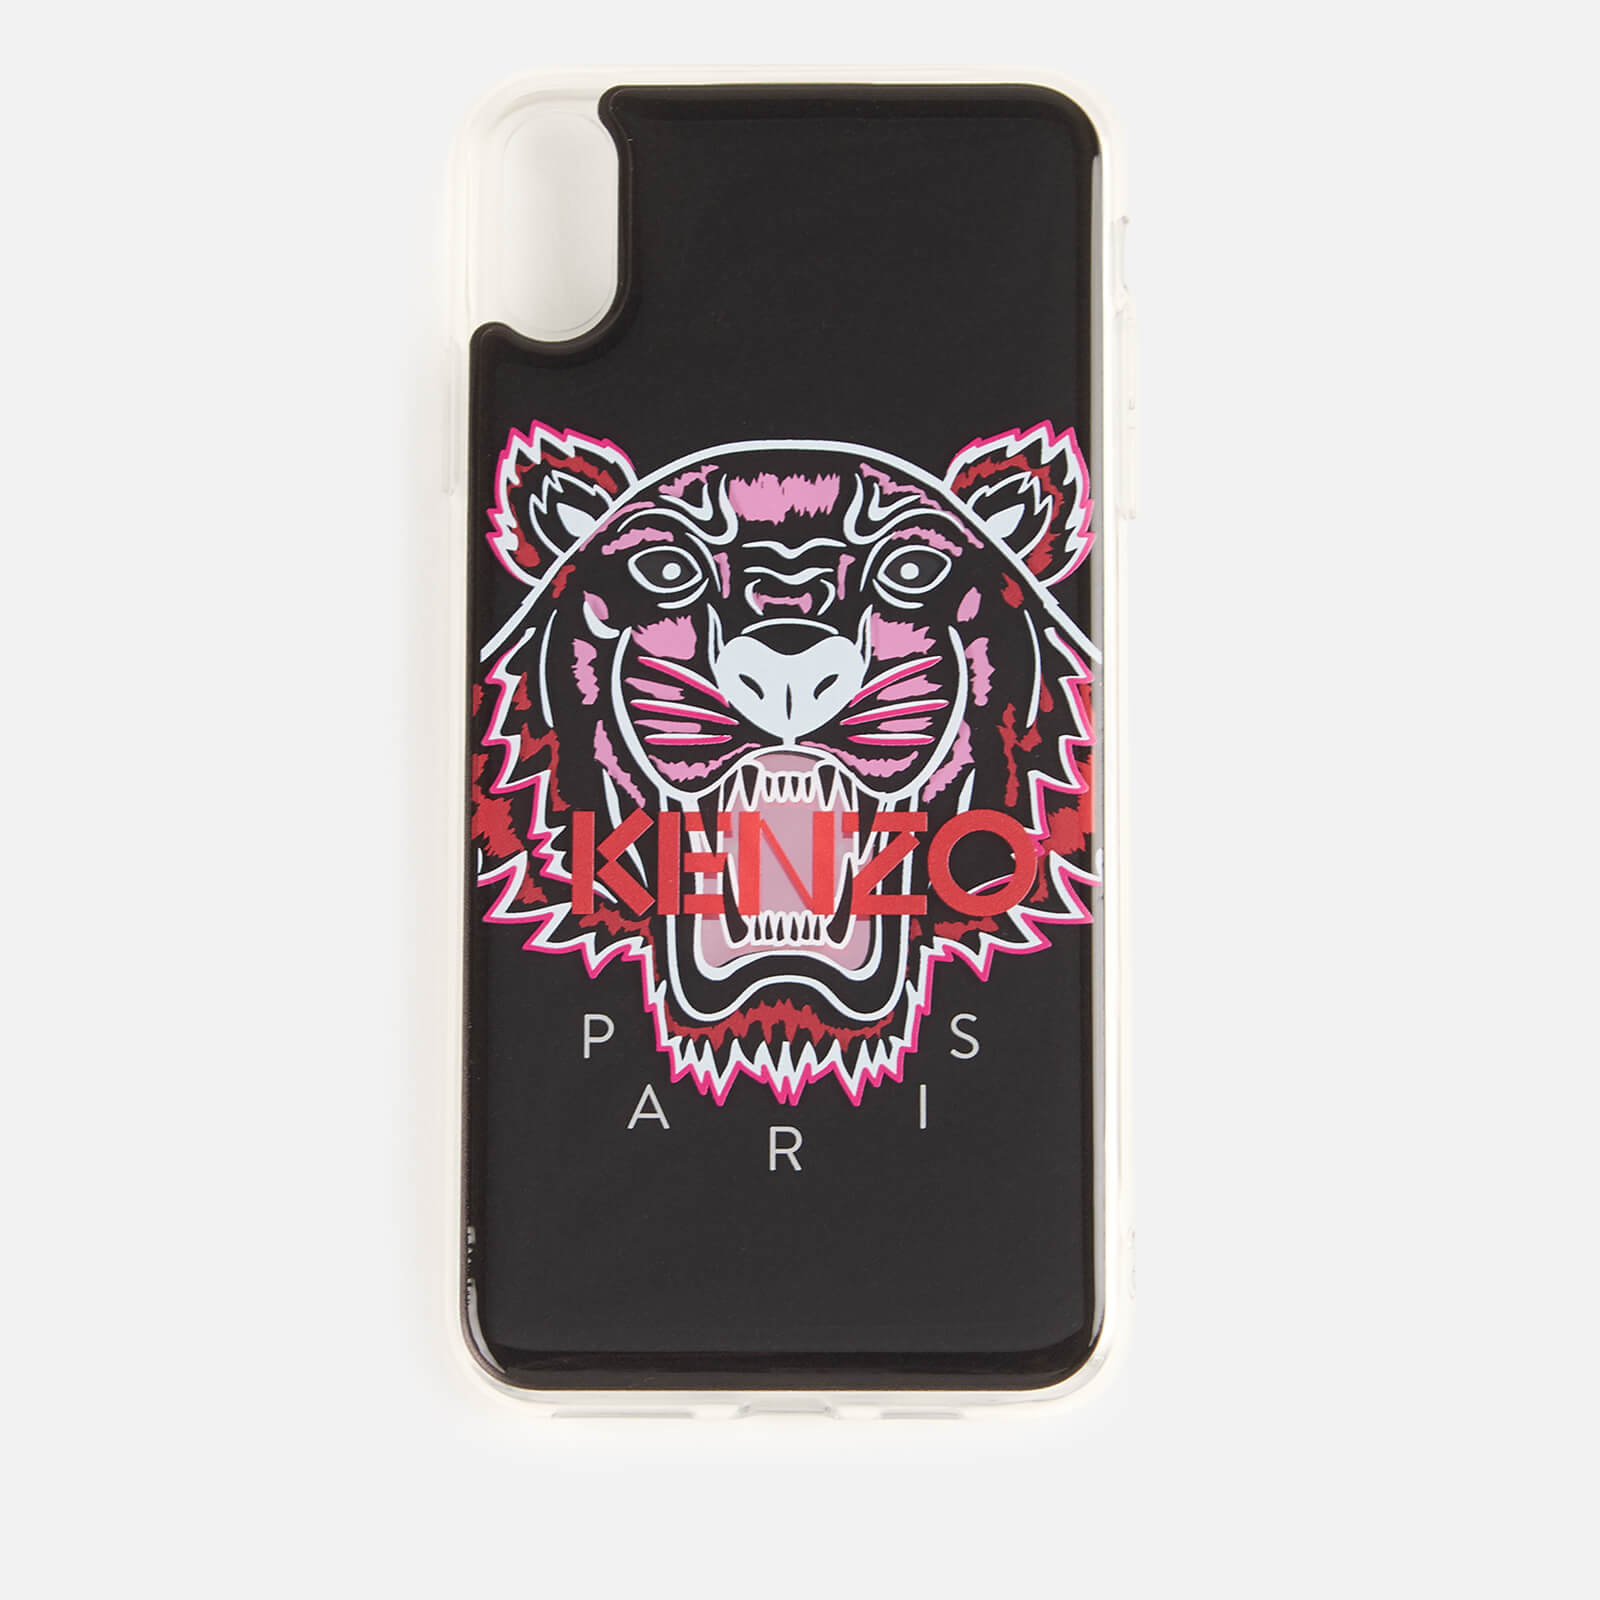 3253a460 KENZO iPhone X Max Case - Black/Pink